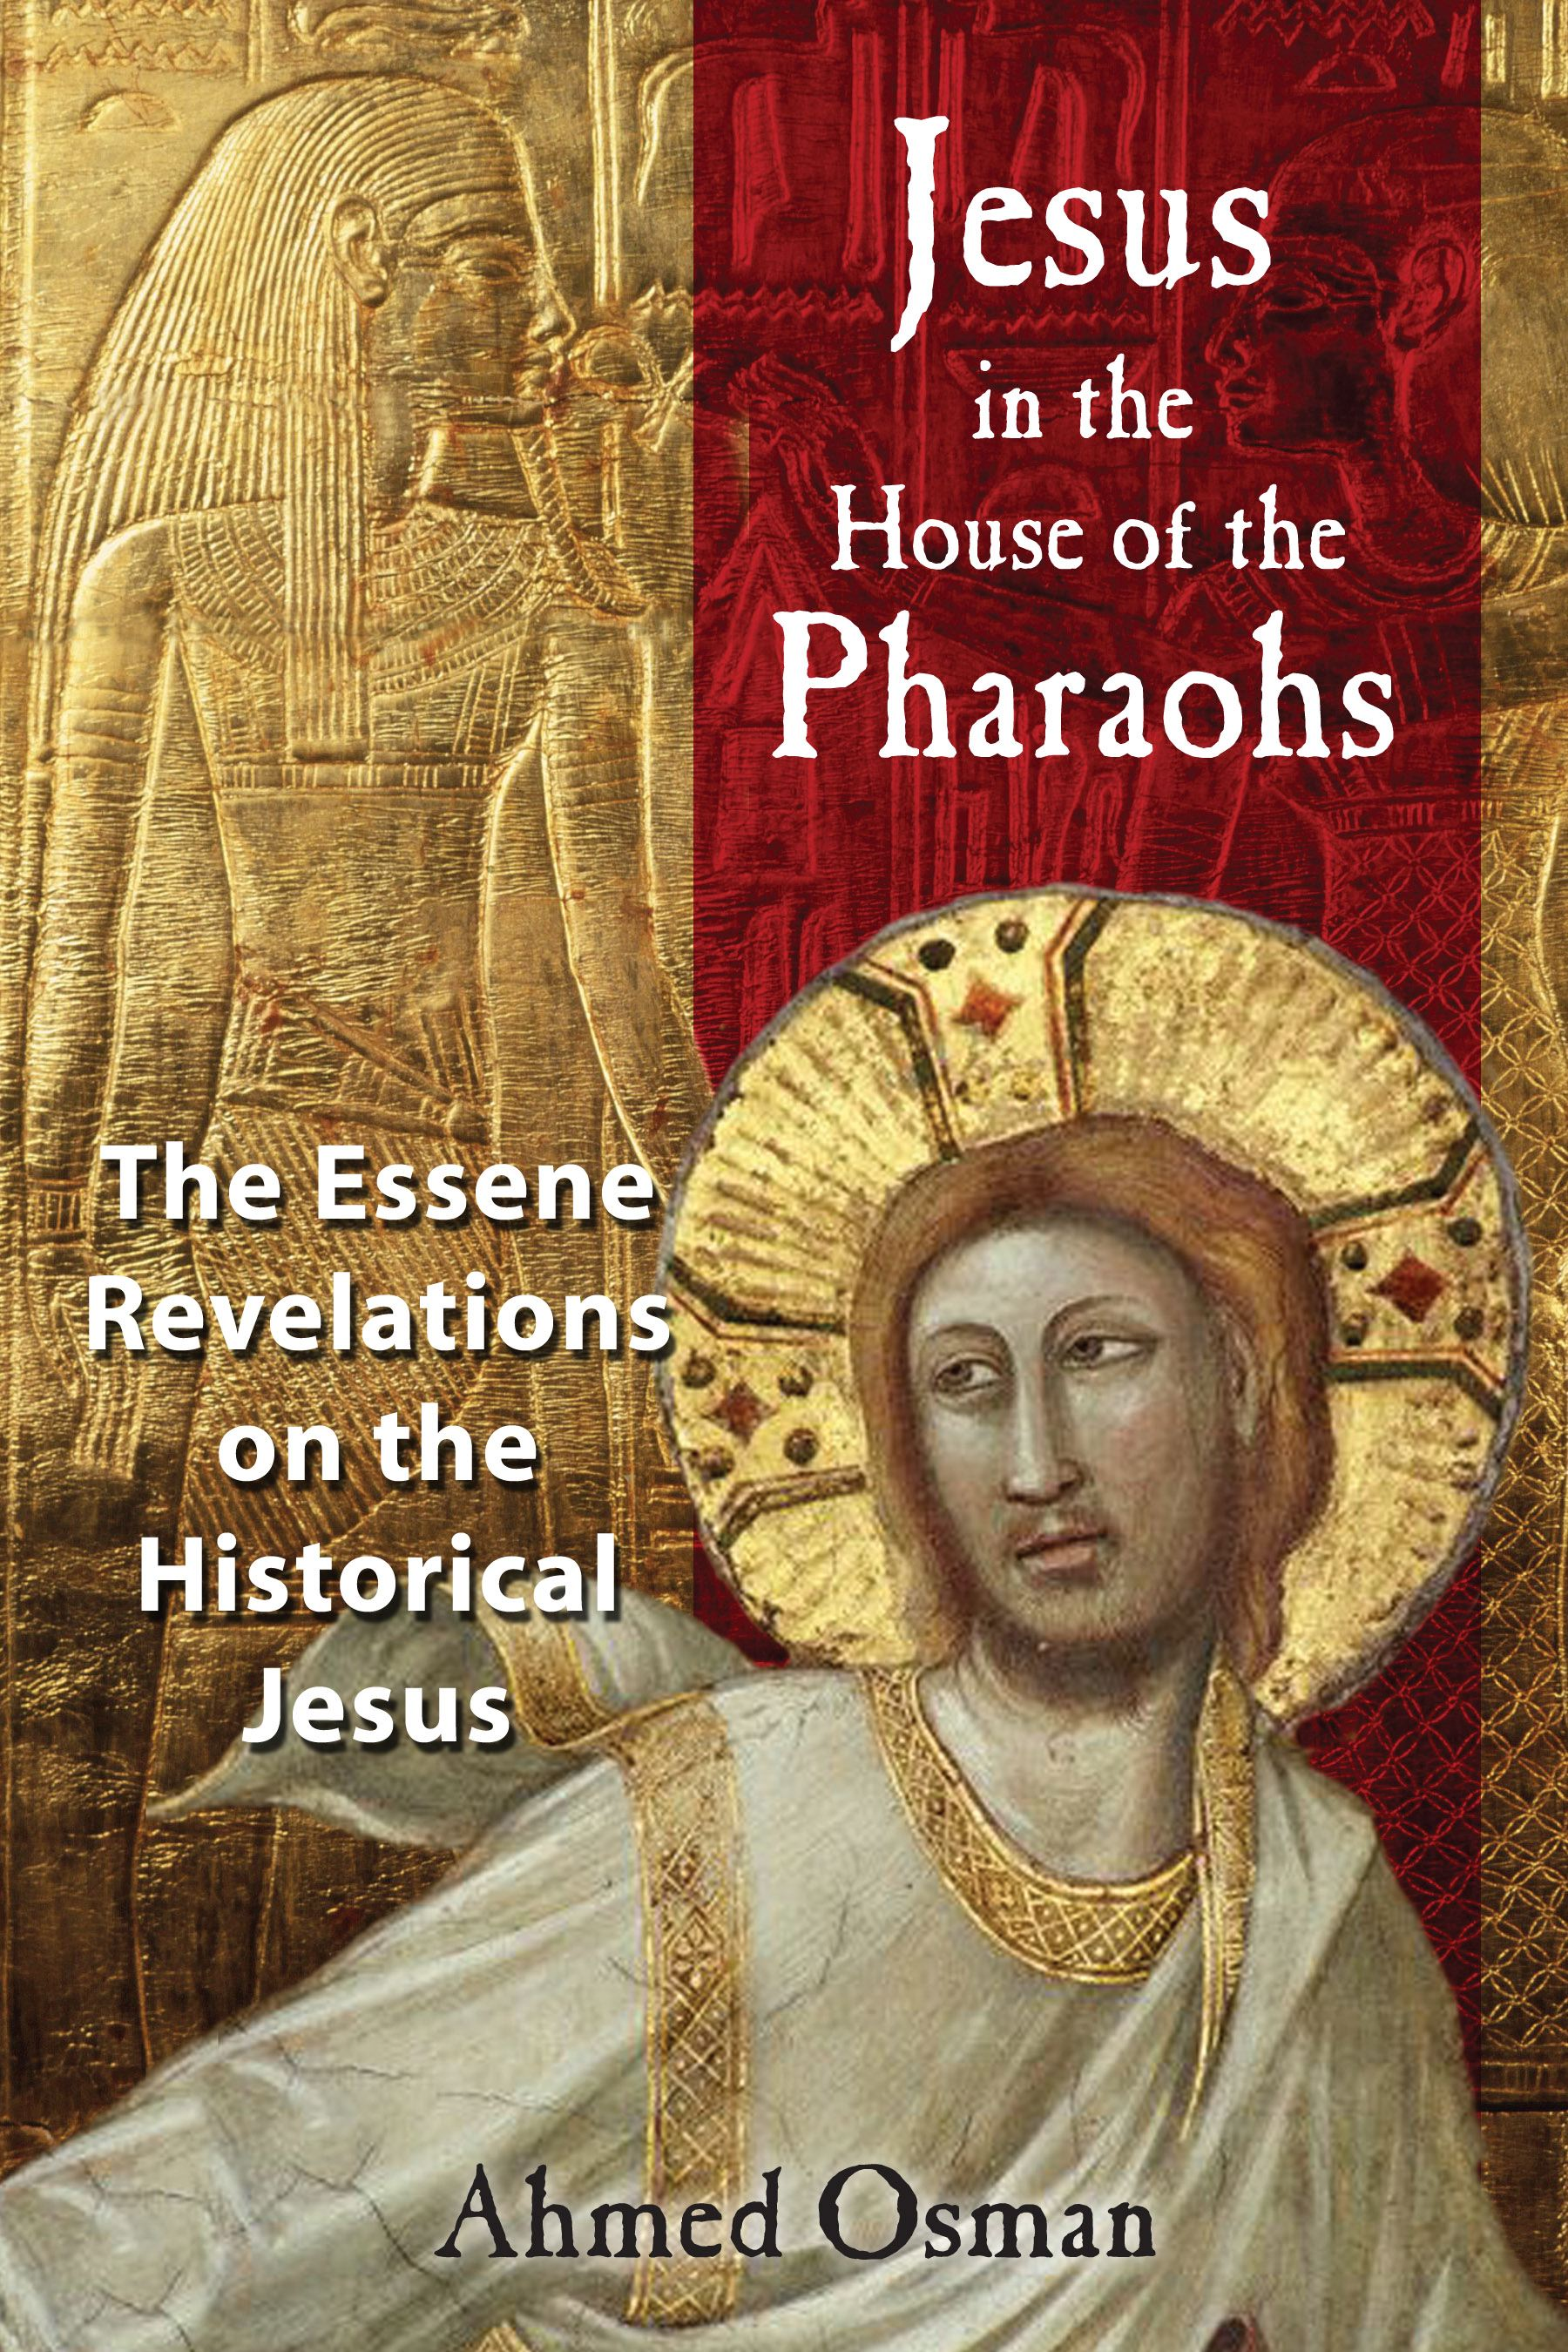 Book Cover Image (jpg): Jesus in the House of the Pharaohs